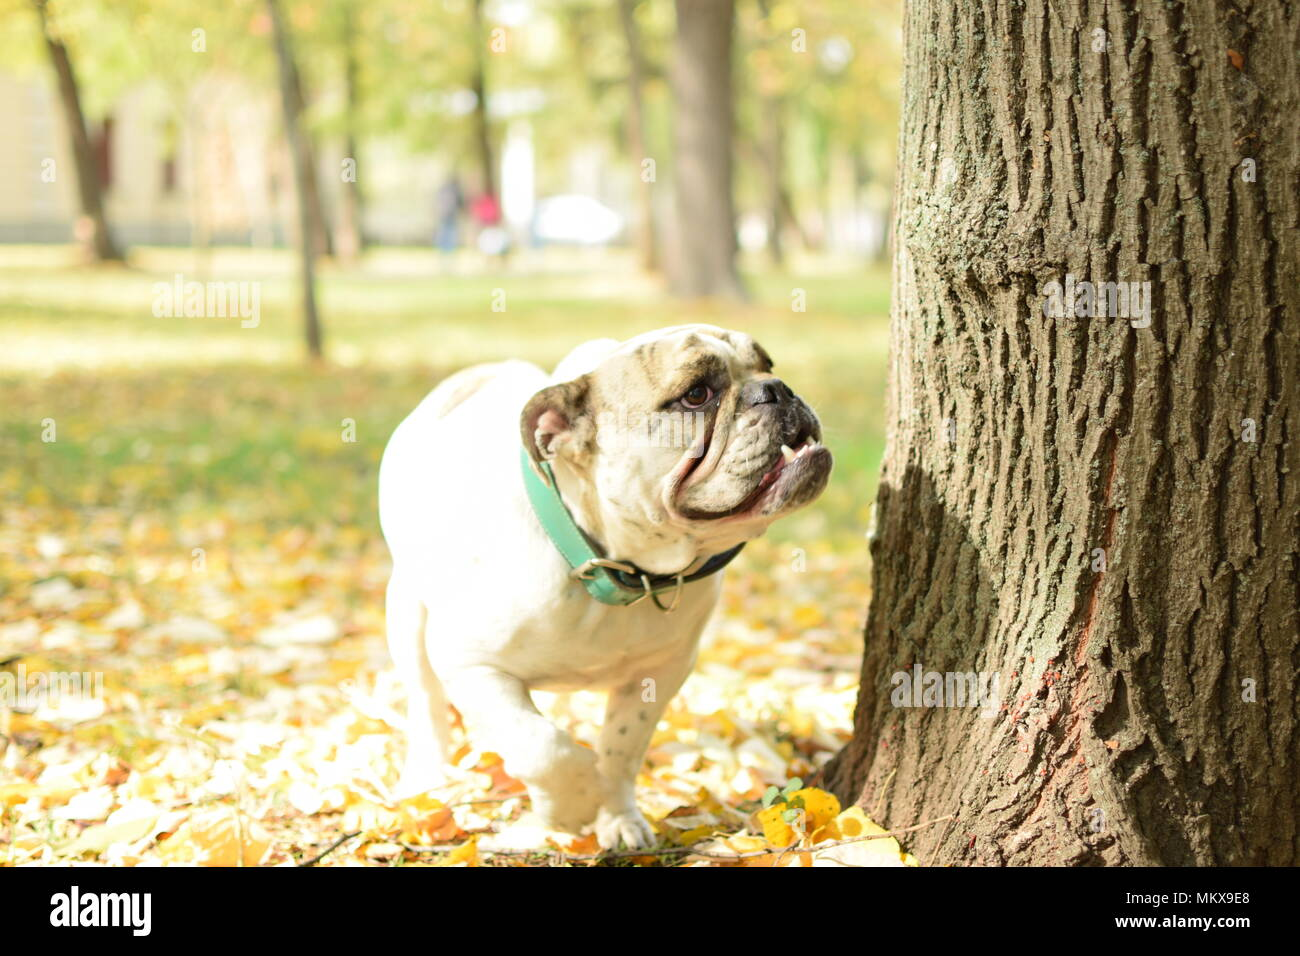 dog in nature - Stock Image